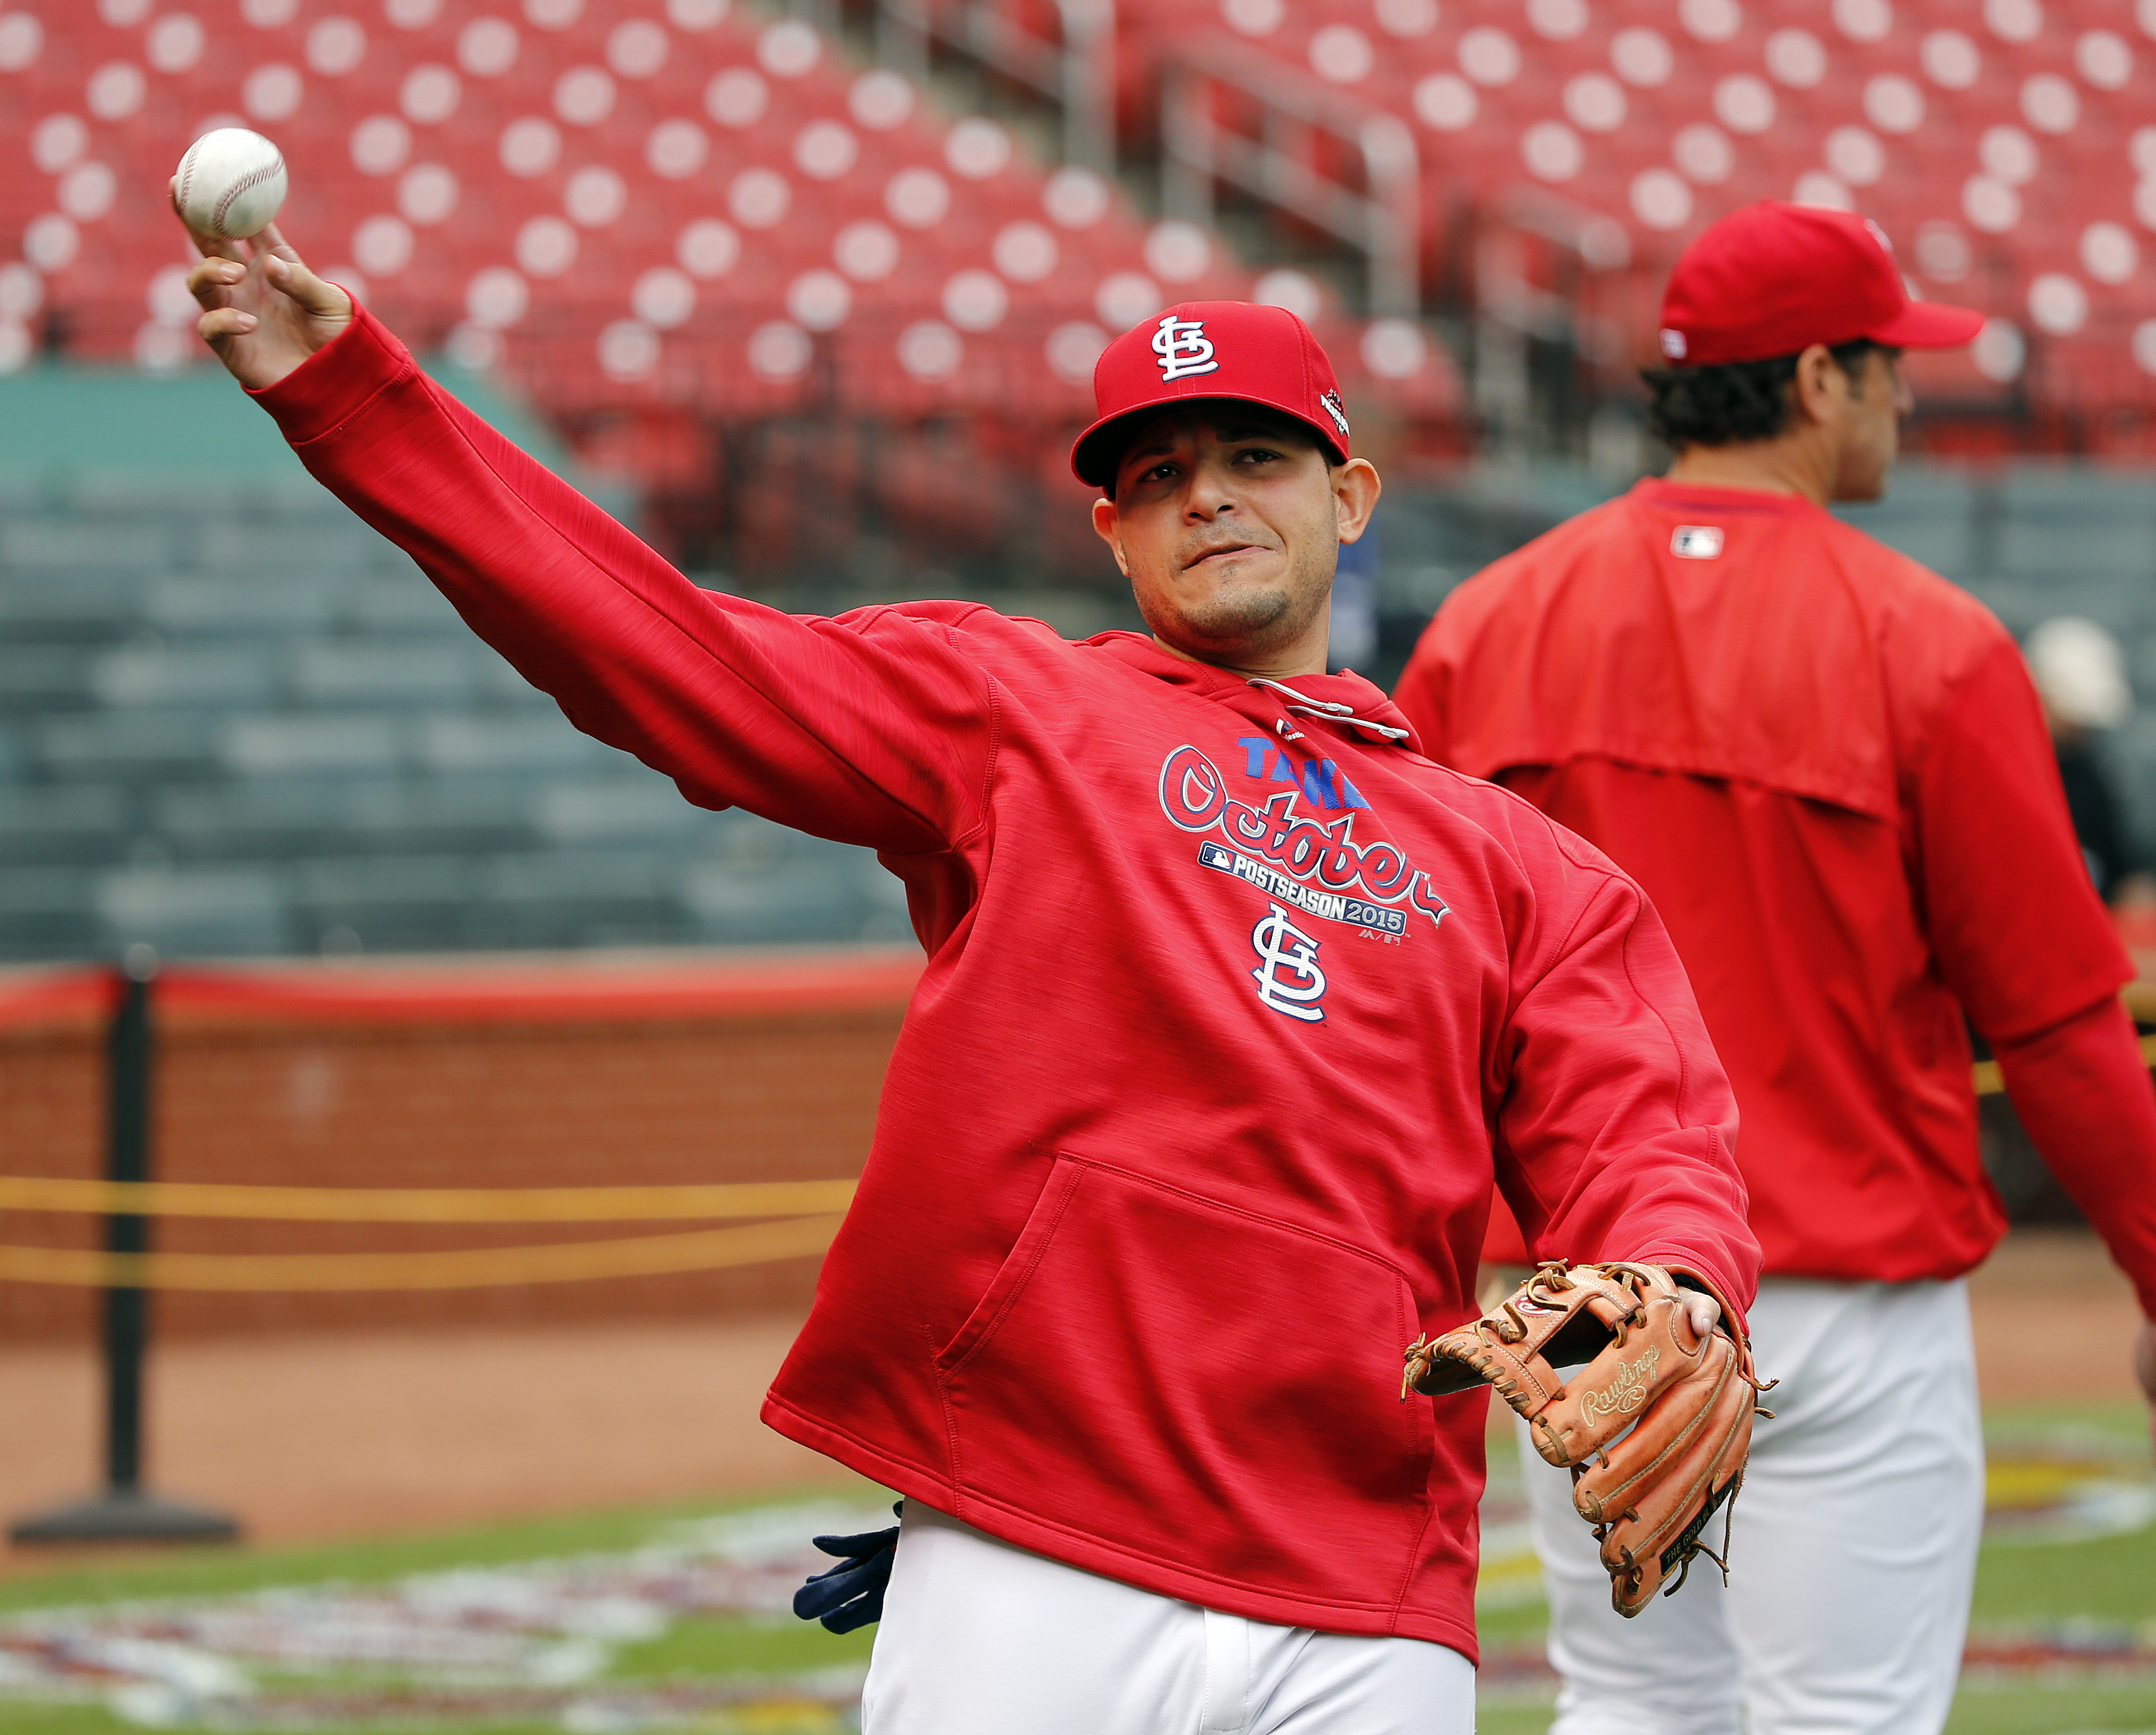 St. Louis Cardinals' Yadier Molina throws before Game 1 in baseball's National League Division Series against the Chicago Cubs, Friday, Oct. 9, 2015, in St. Louis. (AP Photo/Charles Rex Arbogast)